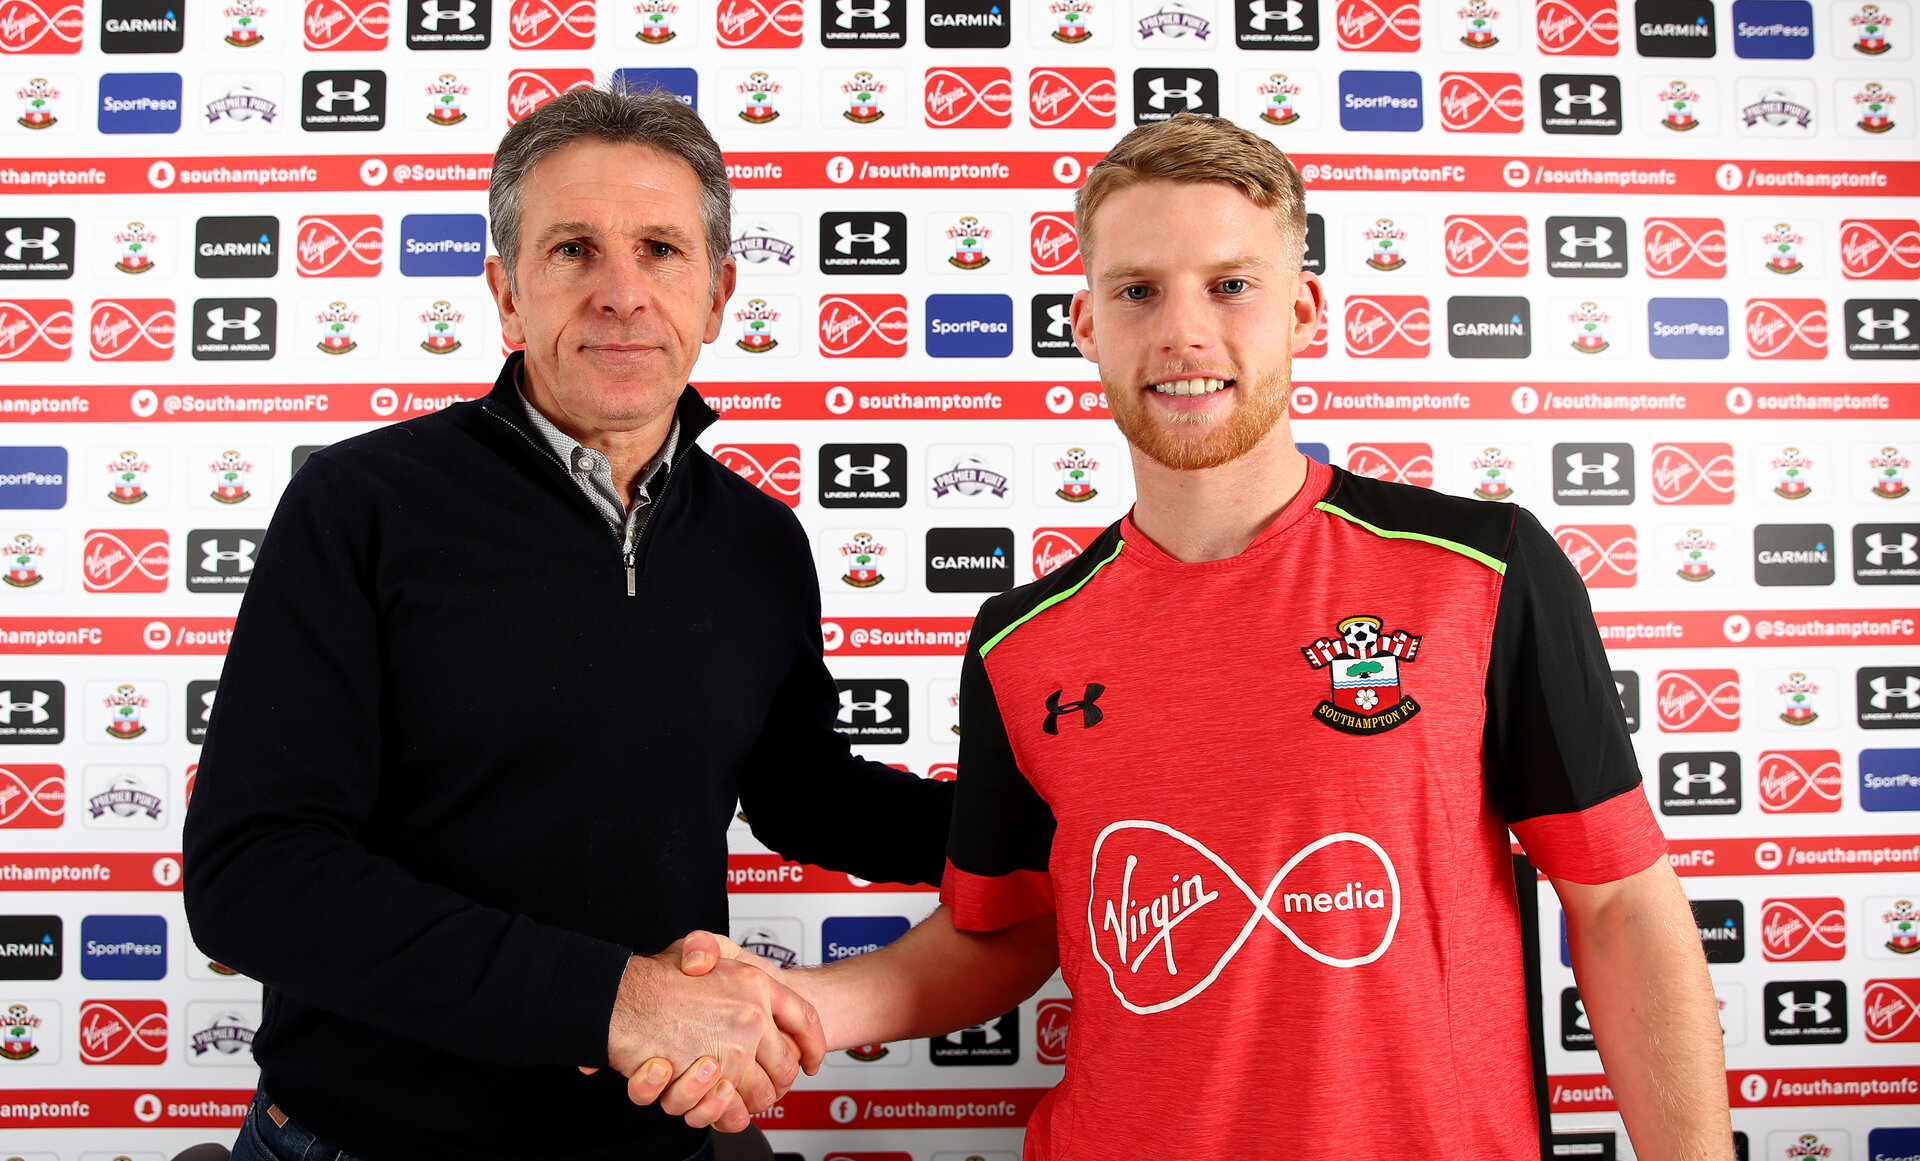 Josh Sims signs a new contract with Southampton FC at the Staplewood Campus, Southampton, 23rd January 2017, with manager Claude Puel